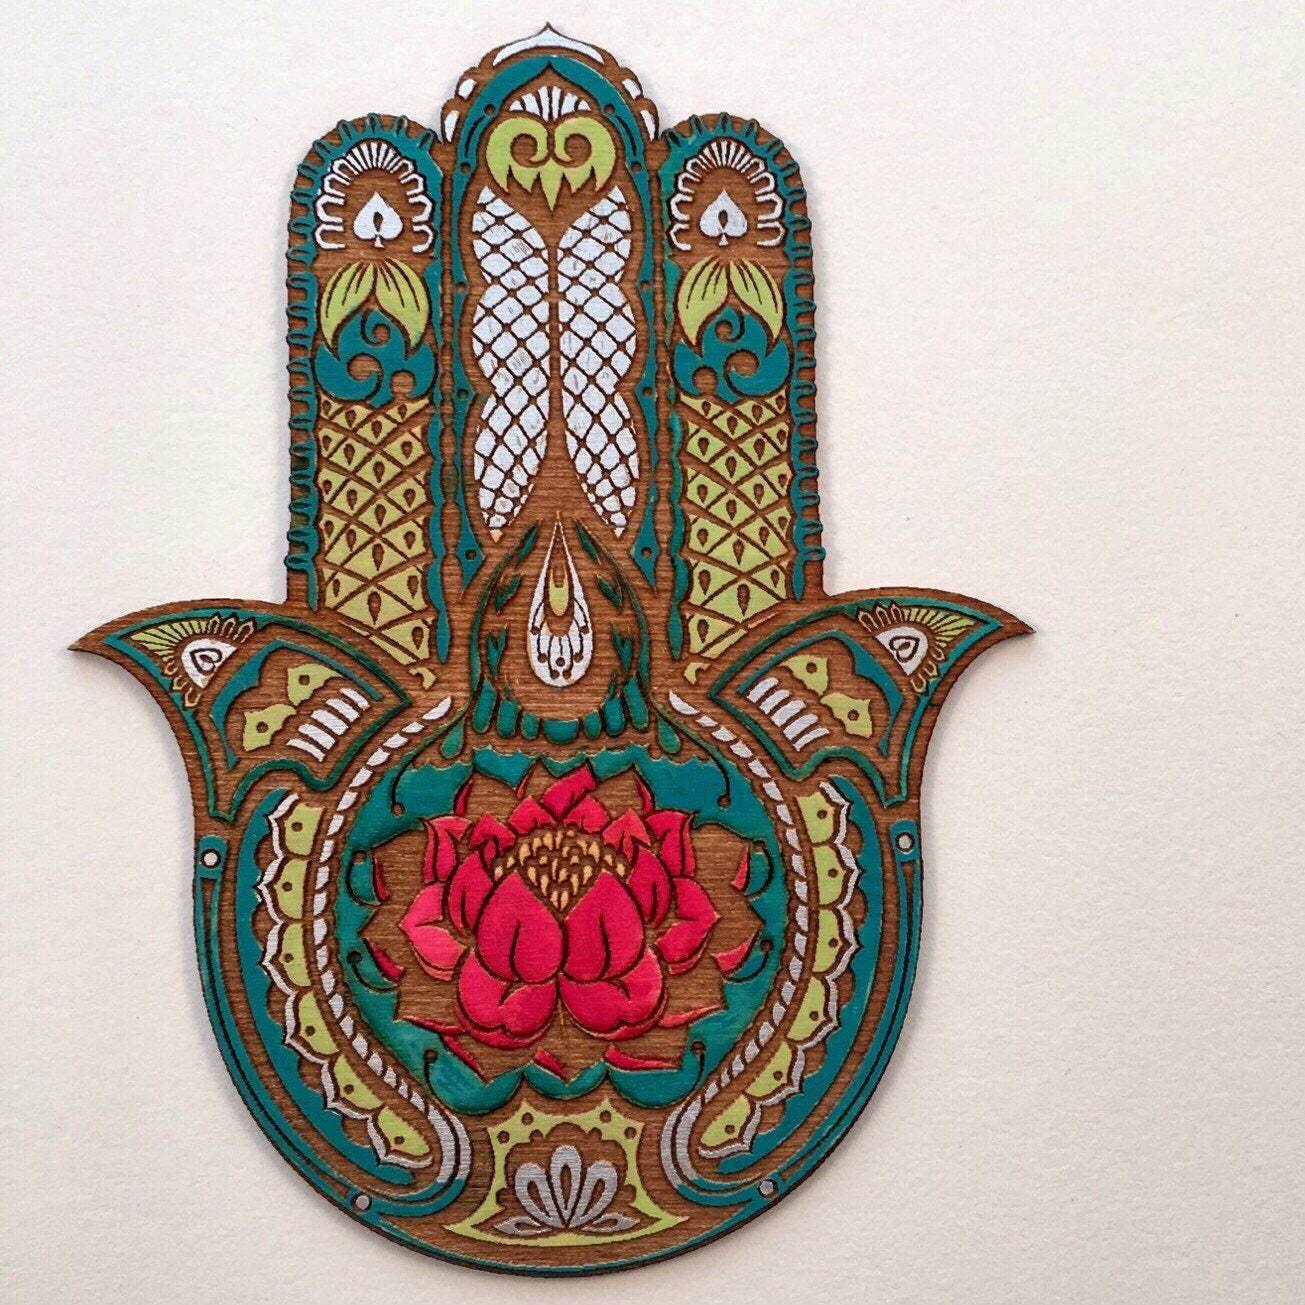 Hamsa Wall Decor lotus flower hamsa wall art, hand painted sacred protection symbol